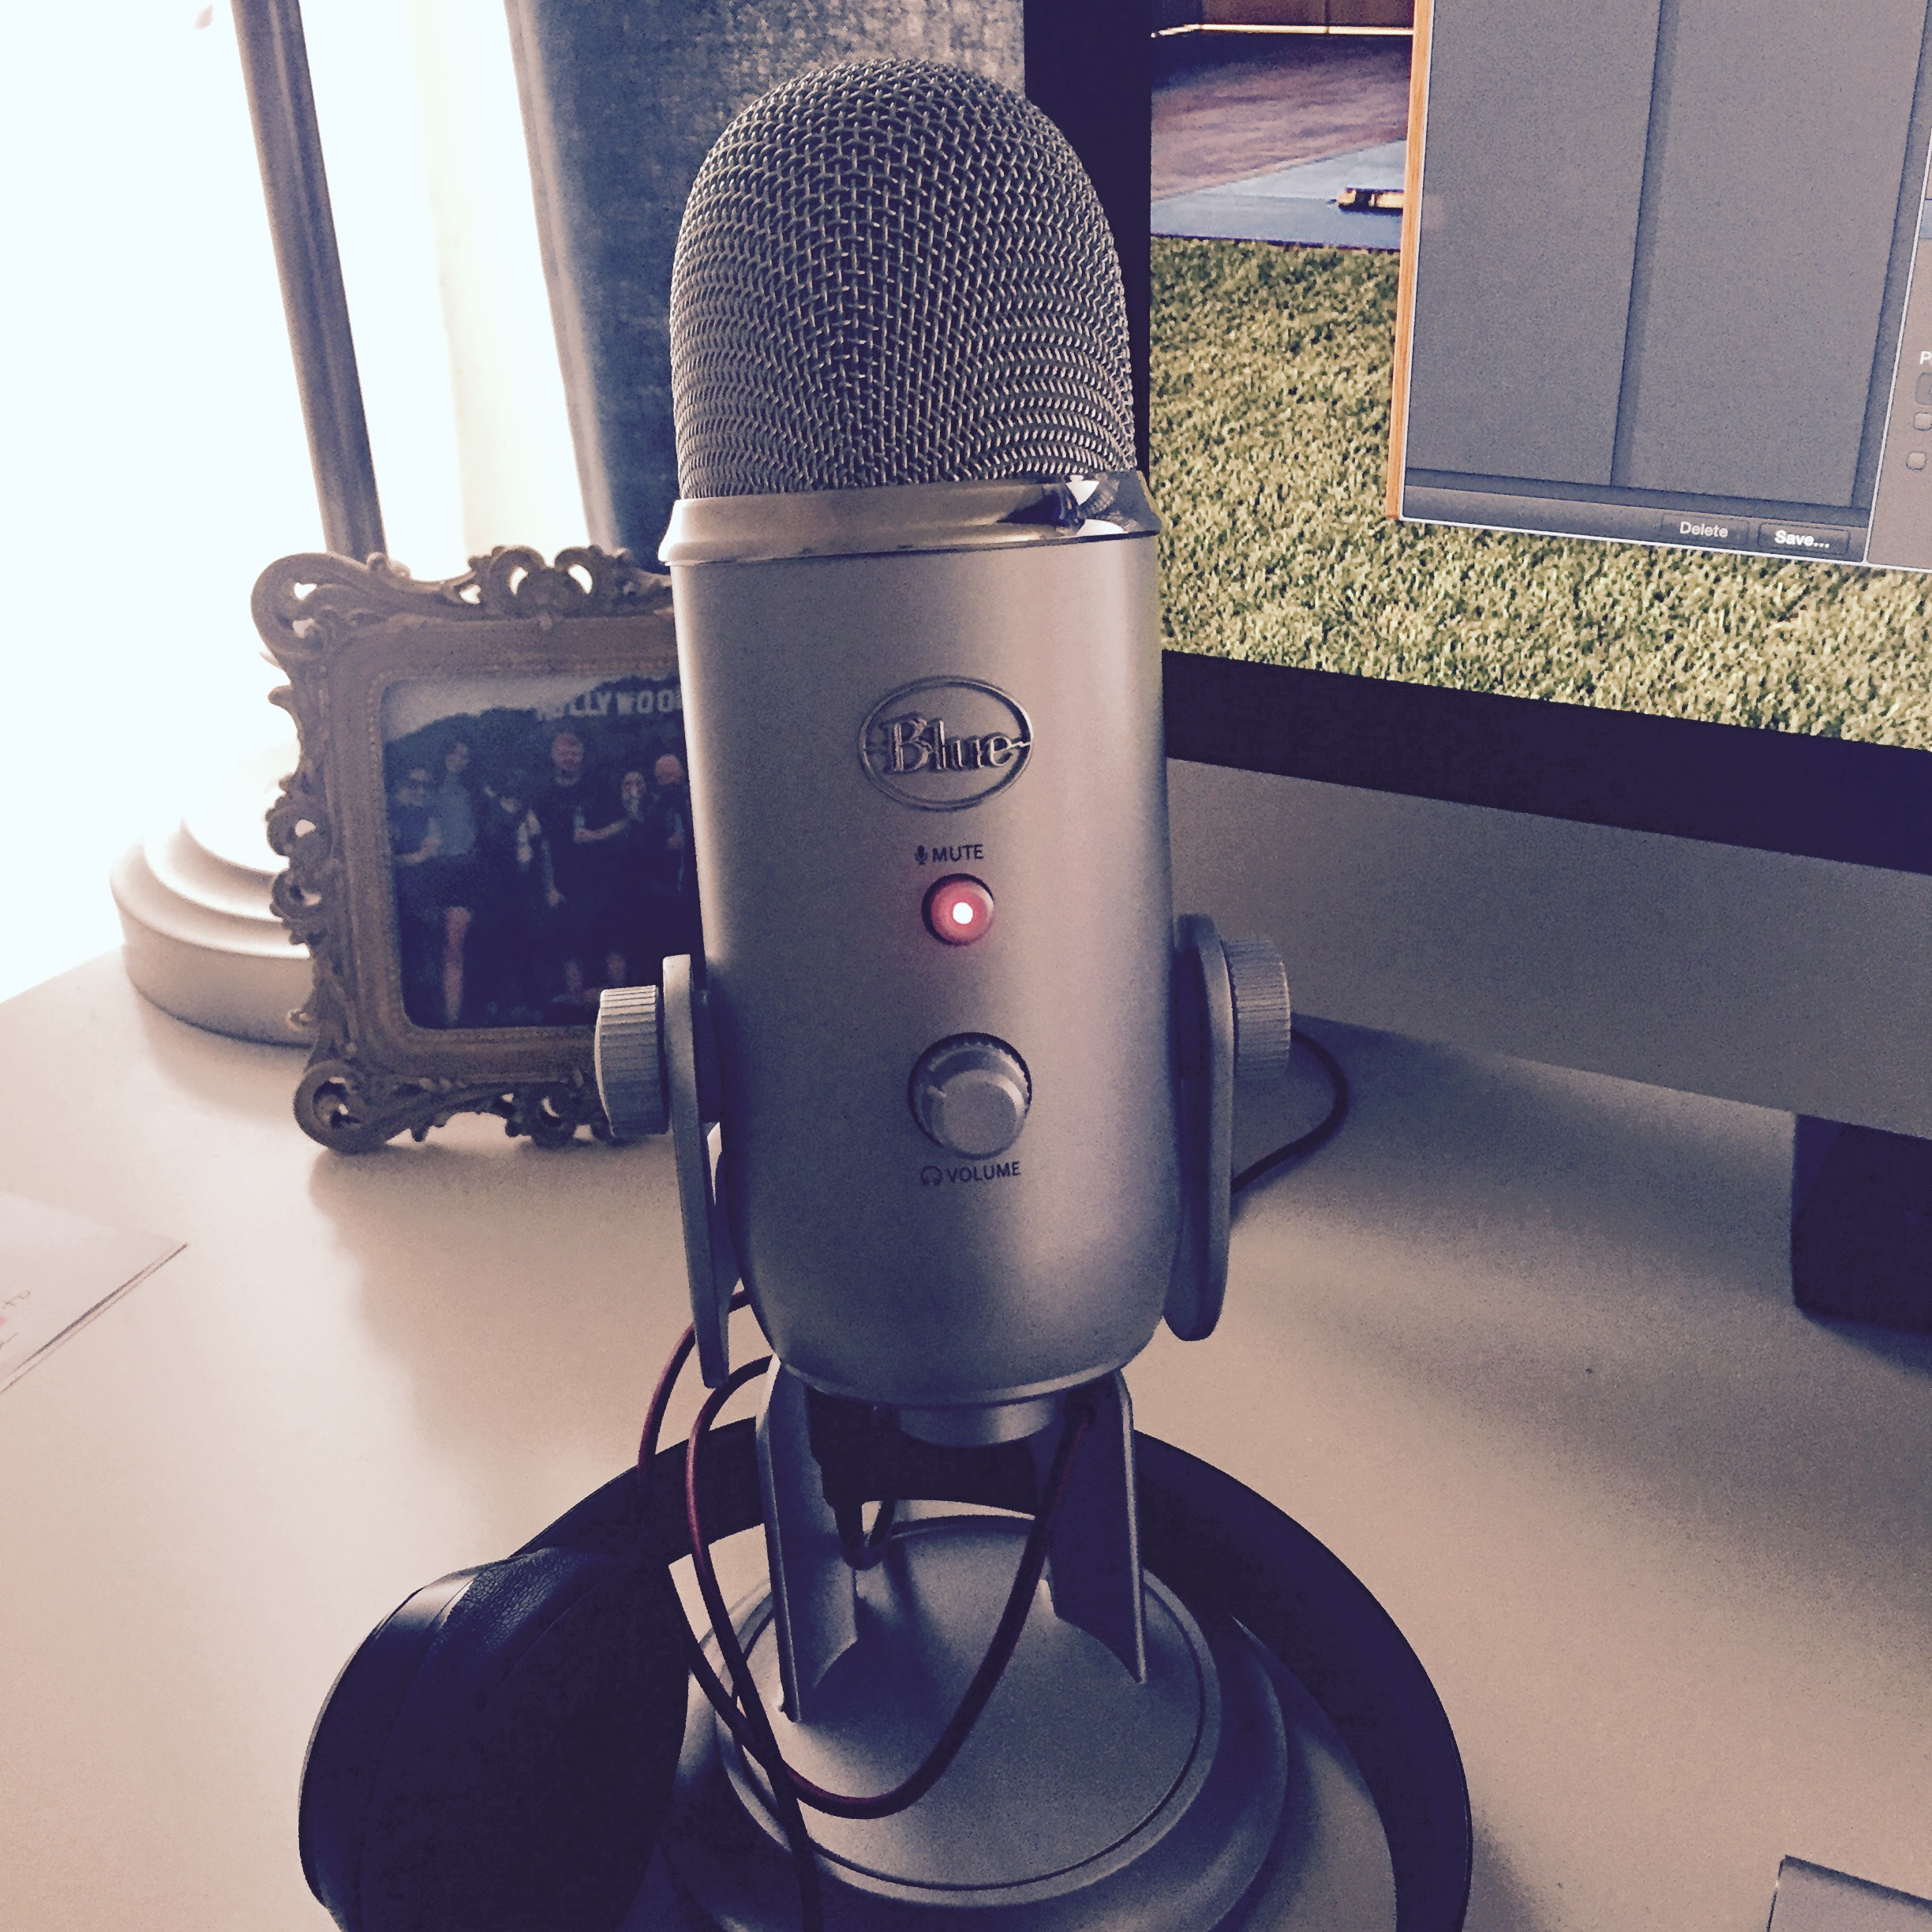 My bad ass new microphone!